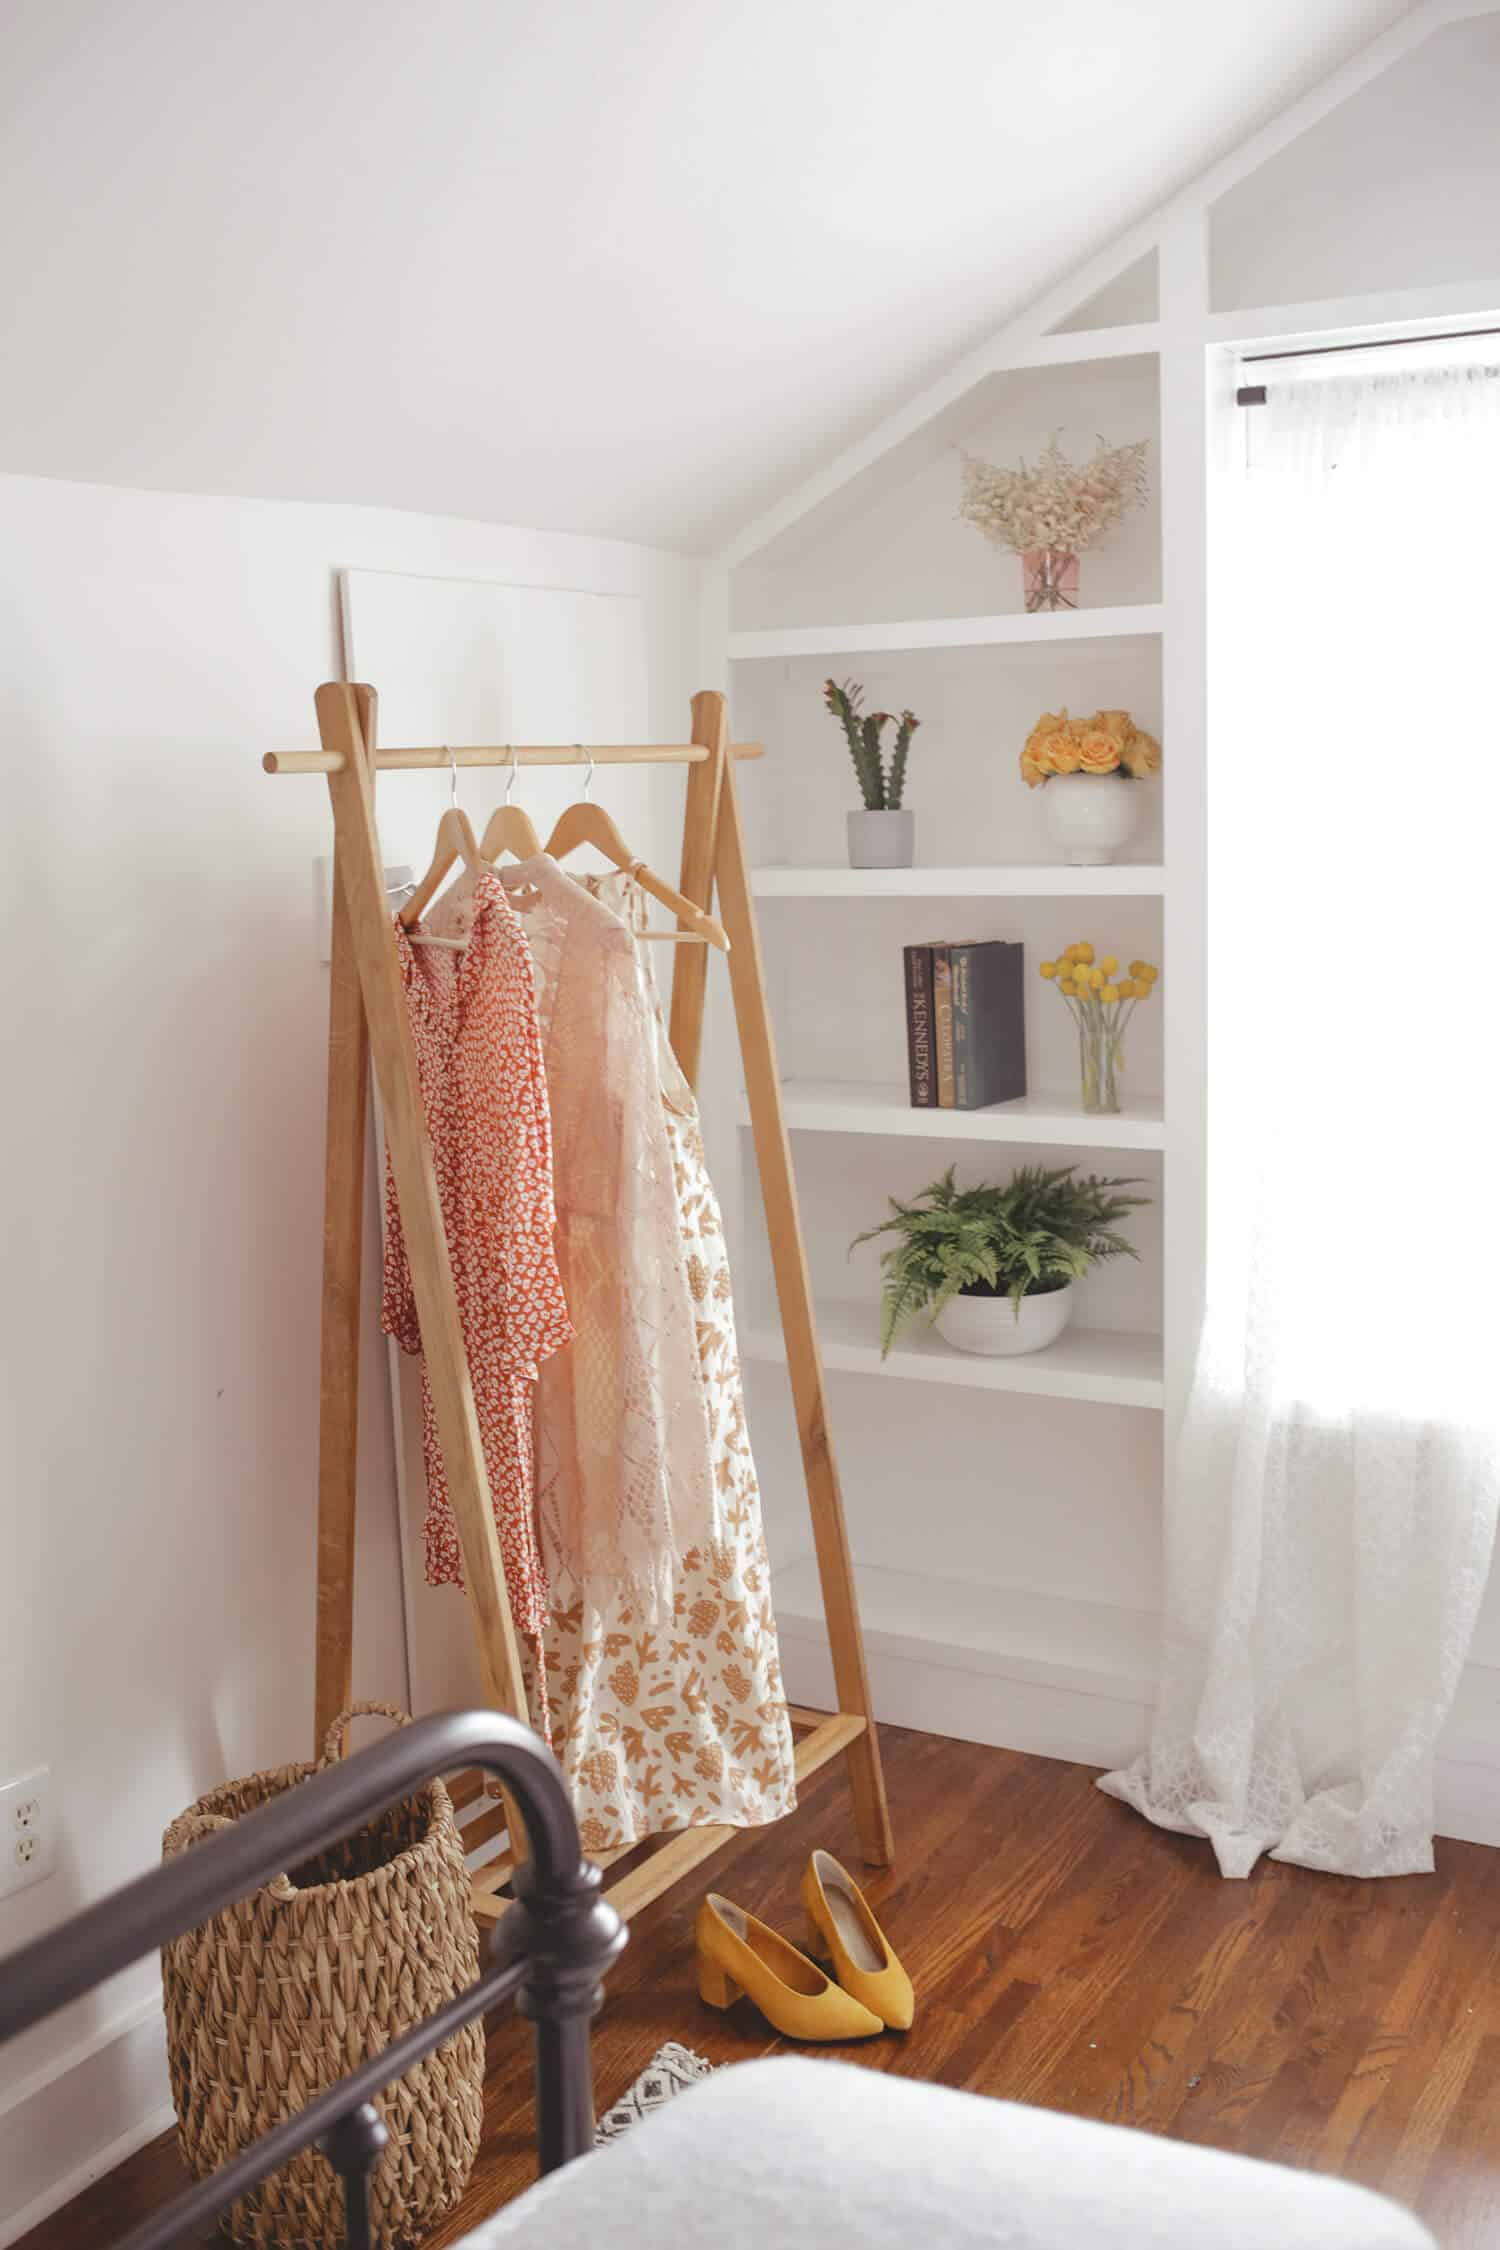 How to Set up the Ultimate Airbnb Space - A Beautiful Mess